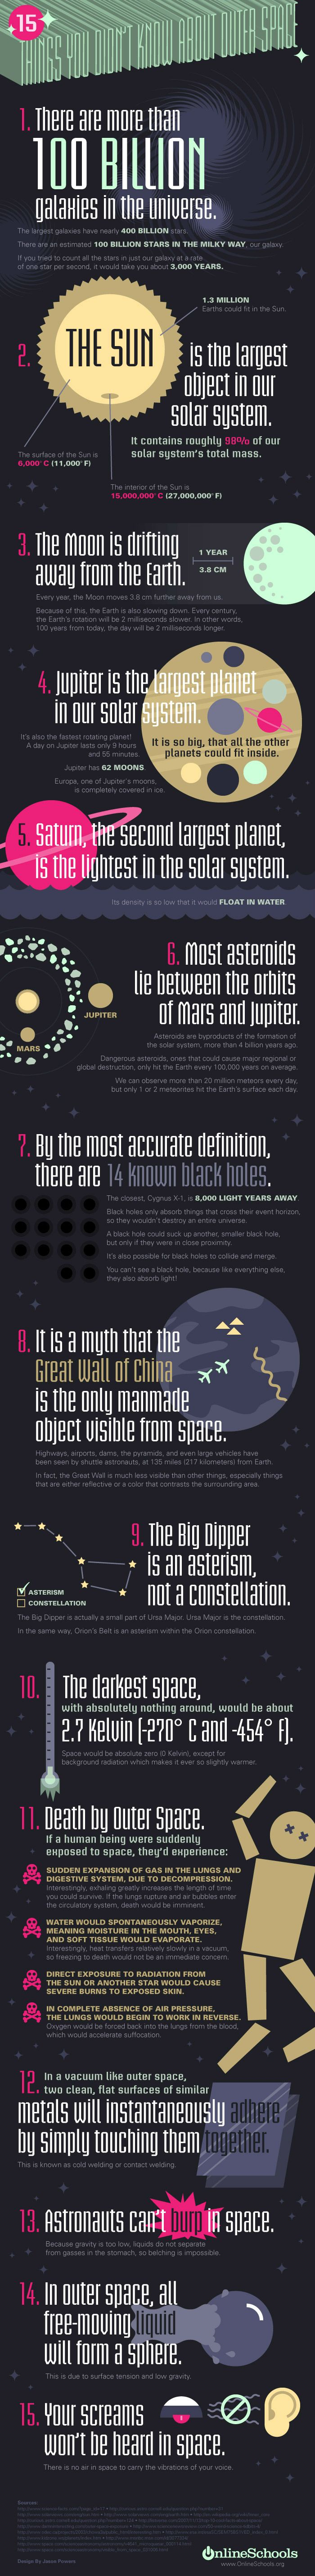 outer space amazing facts infographic